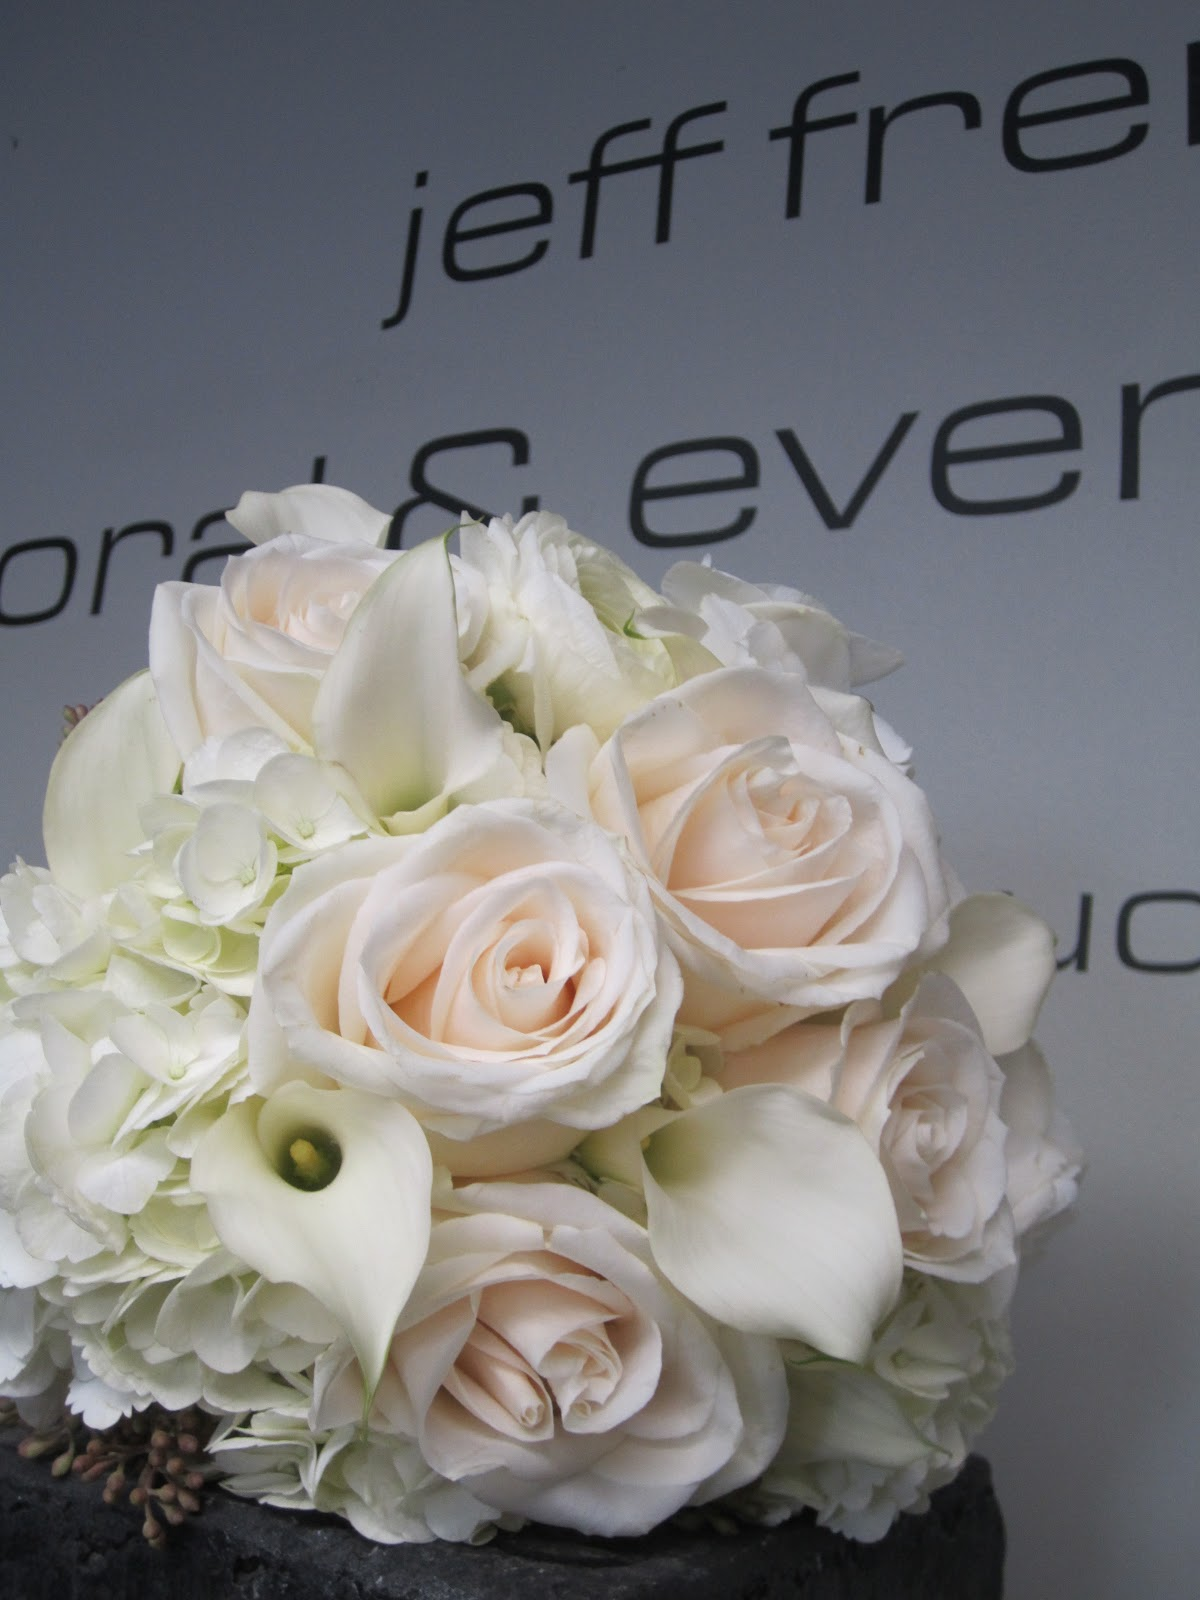 Jeff french floral event design wedding flowers international her attendants carried white hydrangea calla lilies vandella roses and white ranunculus izmirmasajfo